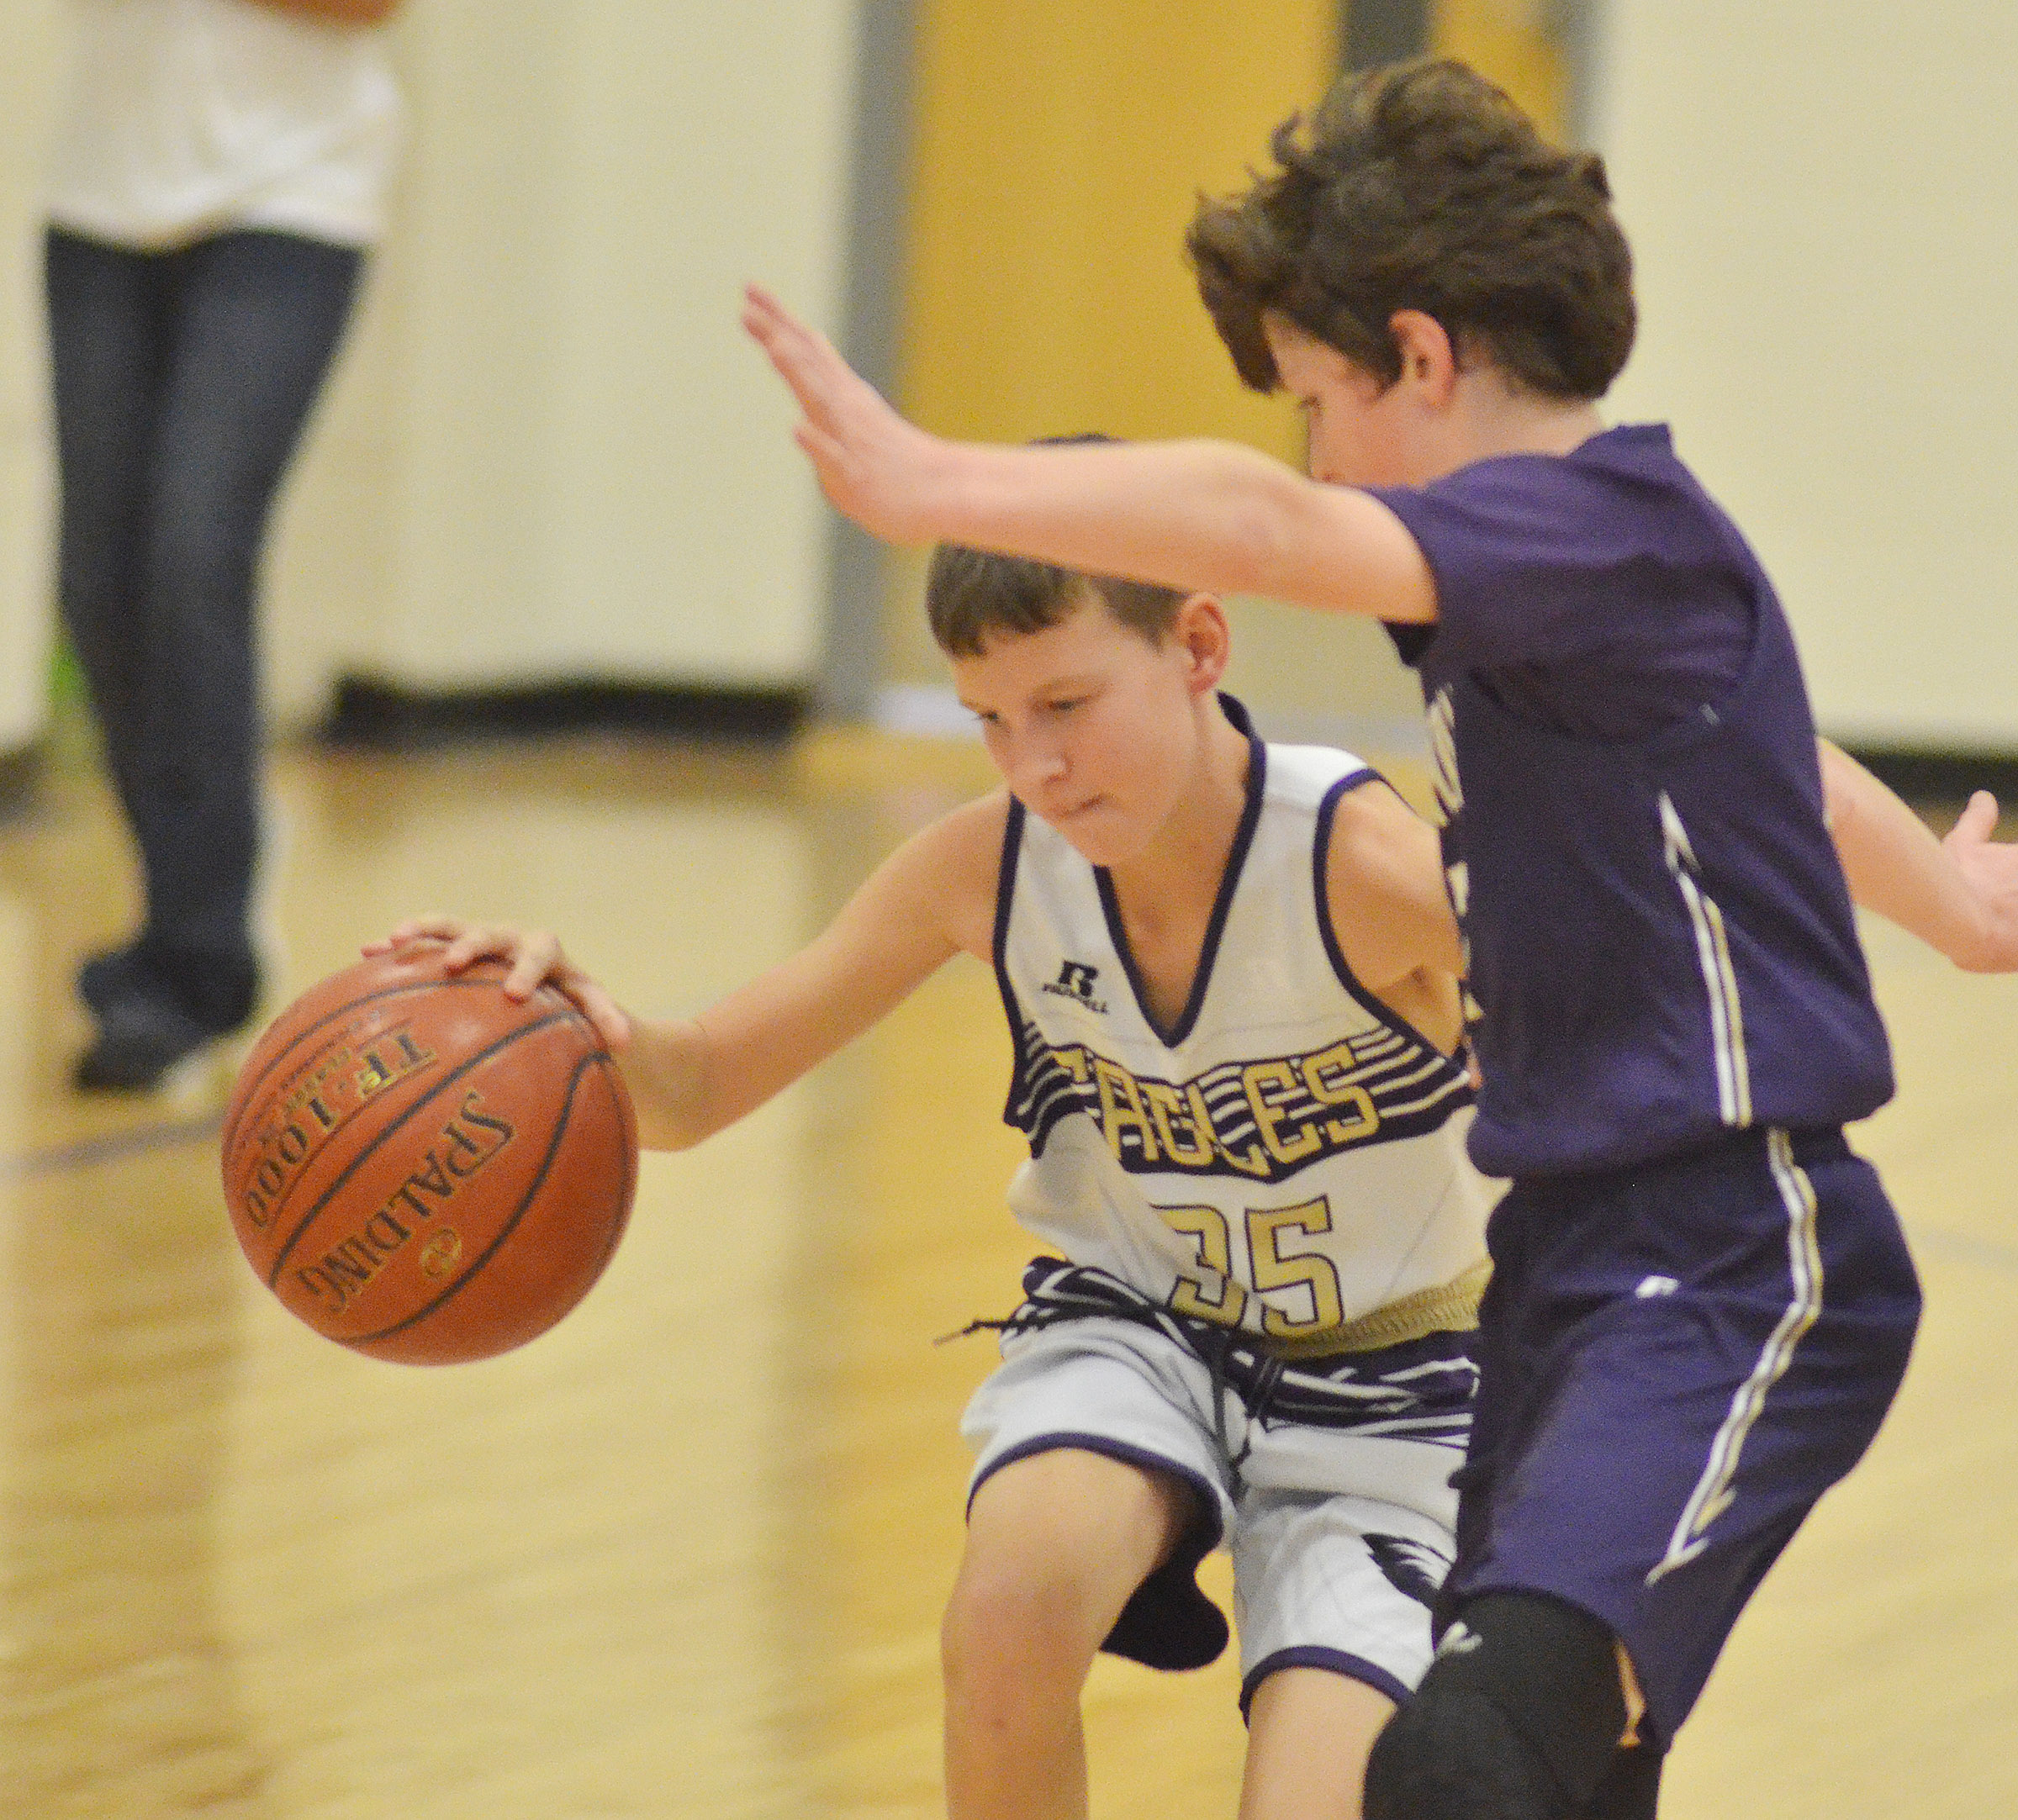 Campbellsville Elementary School fifth-grader Rowan Petett protects the ball.